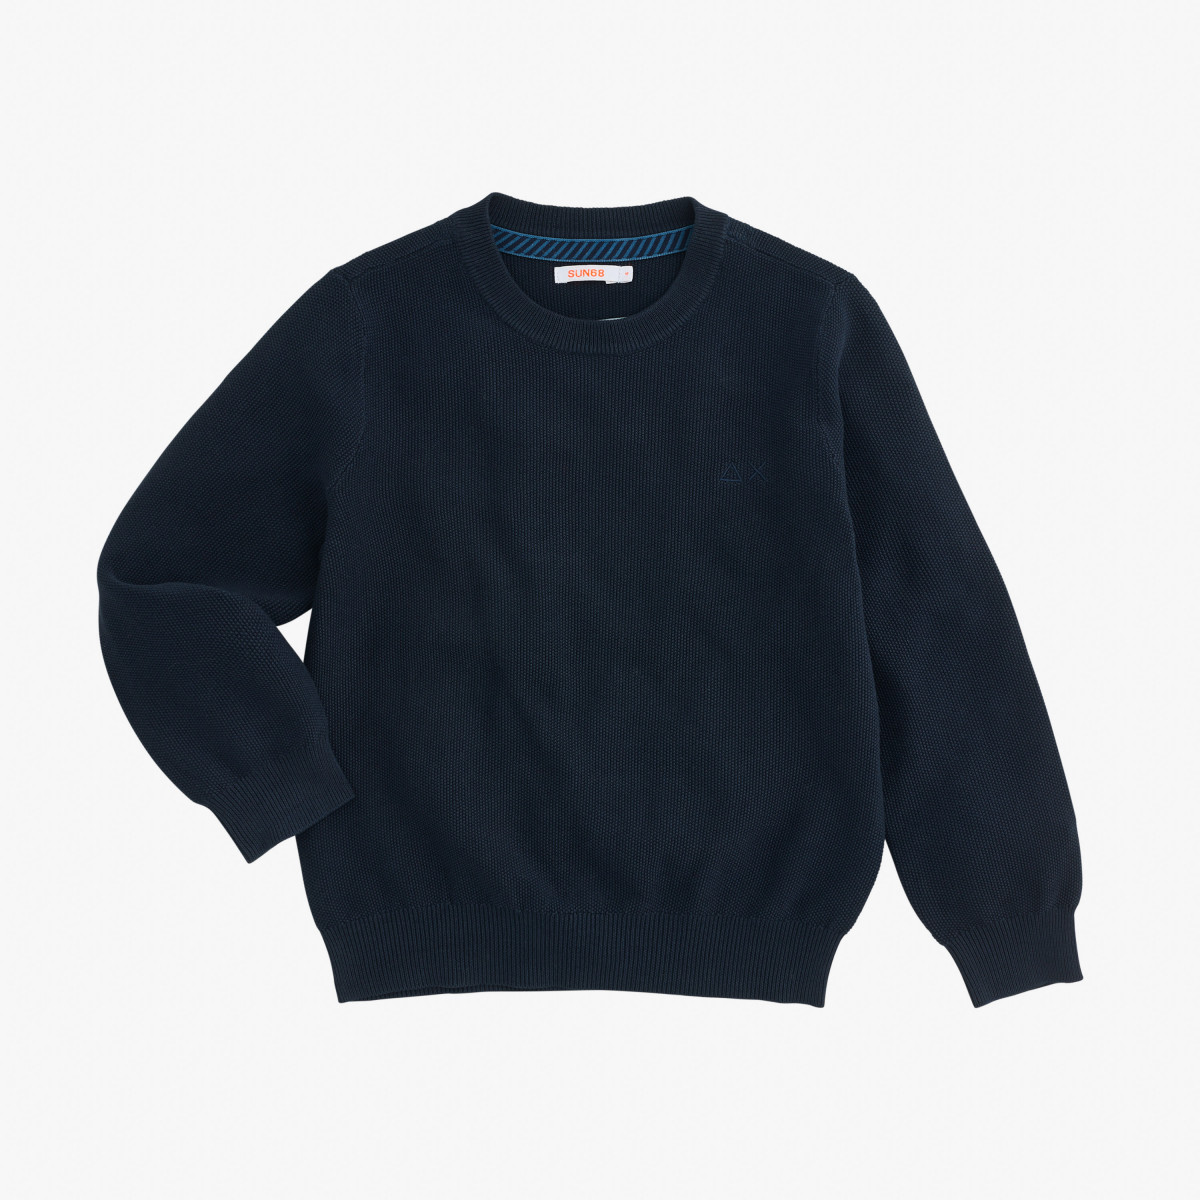 BOY'S ROUND COLD DYE VINTAGE NAVY BLUE